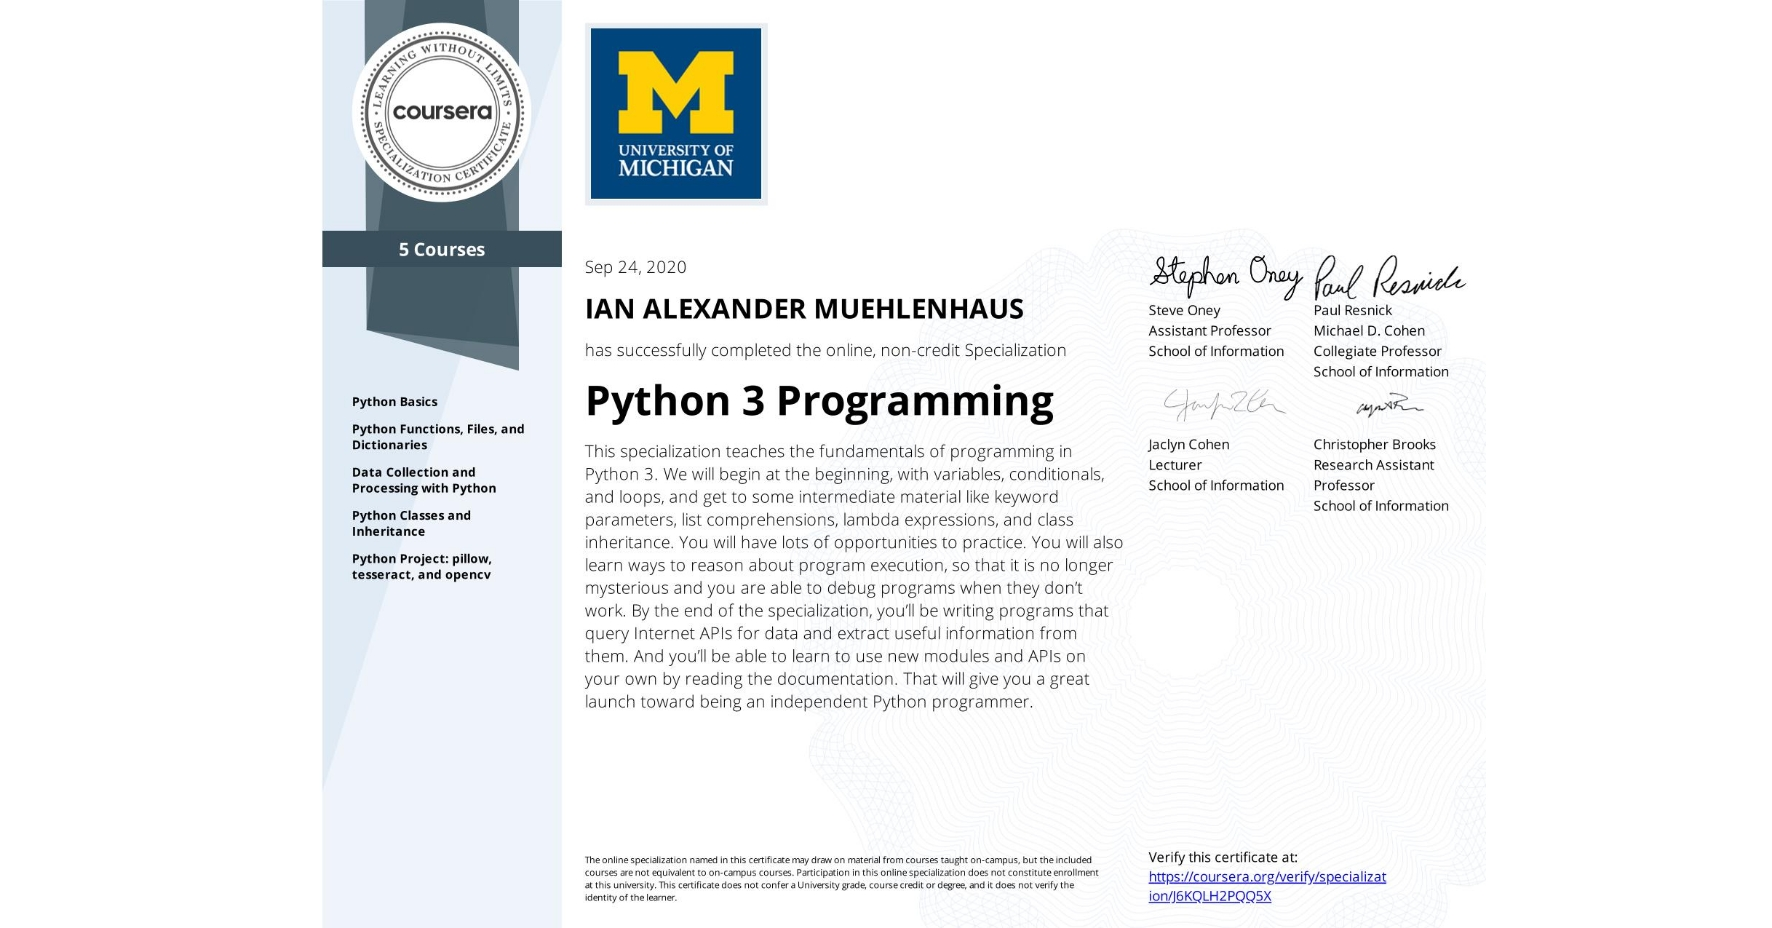 View certificate for IAN ALEXANDER  MUEHLENHAUS, Python 3 Programming, offered through Coursera. This specialization teaches the fundamentals of programming in Python 3. We will begin at the beginning, with variables, conditionals, and loops, and get to some intermediate material like keyword parameters, list comprehensions, lambda expressions, and class inheritance.  You will have lots of opportunities to practice. You will also learn ways to reason about program execution, so that it is no longer mysterious and you are able to debug programs when they don't work.  By the end of the specialization, you'll be writing programs that query Internet APIs for data and extract useful information from them. And you'll be able to learn to use new modules and APIs on your own by reading the documentation. That will give you a great launch toward being an independent Python programmer.